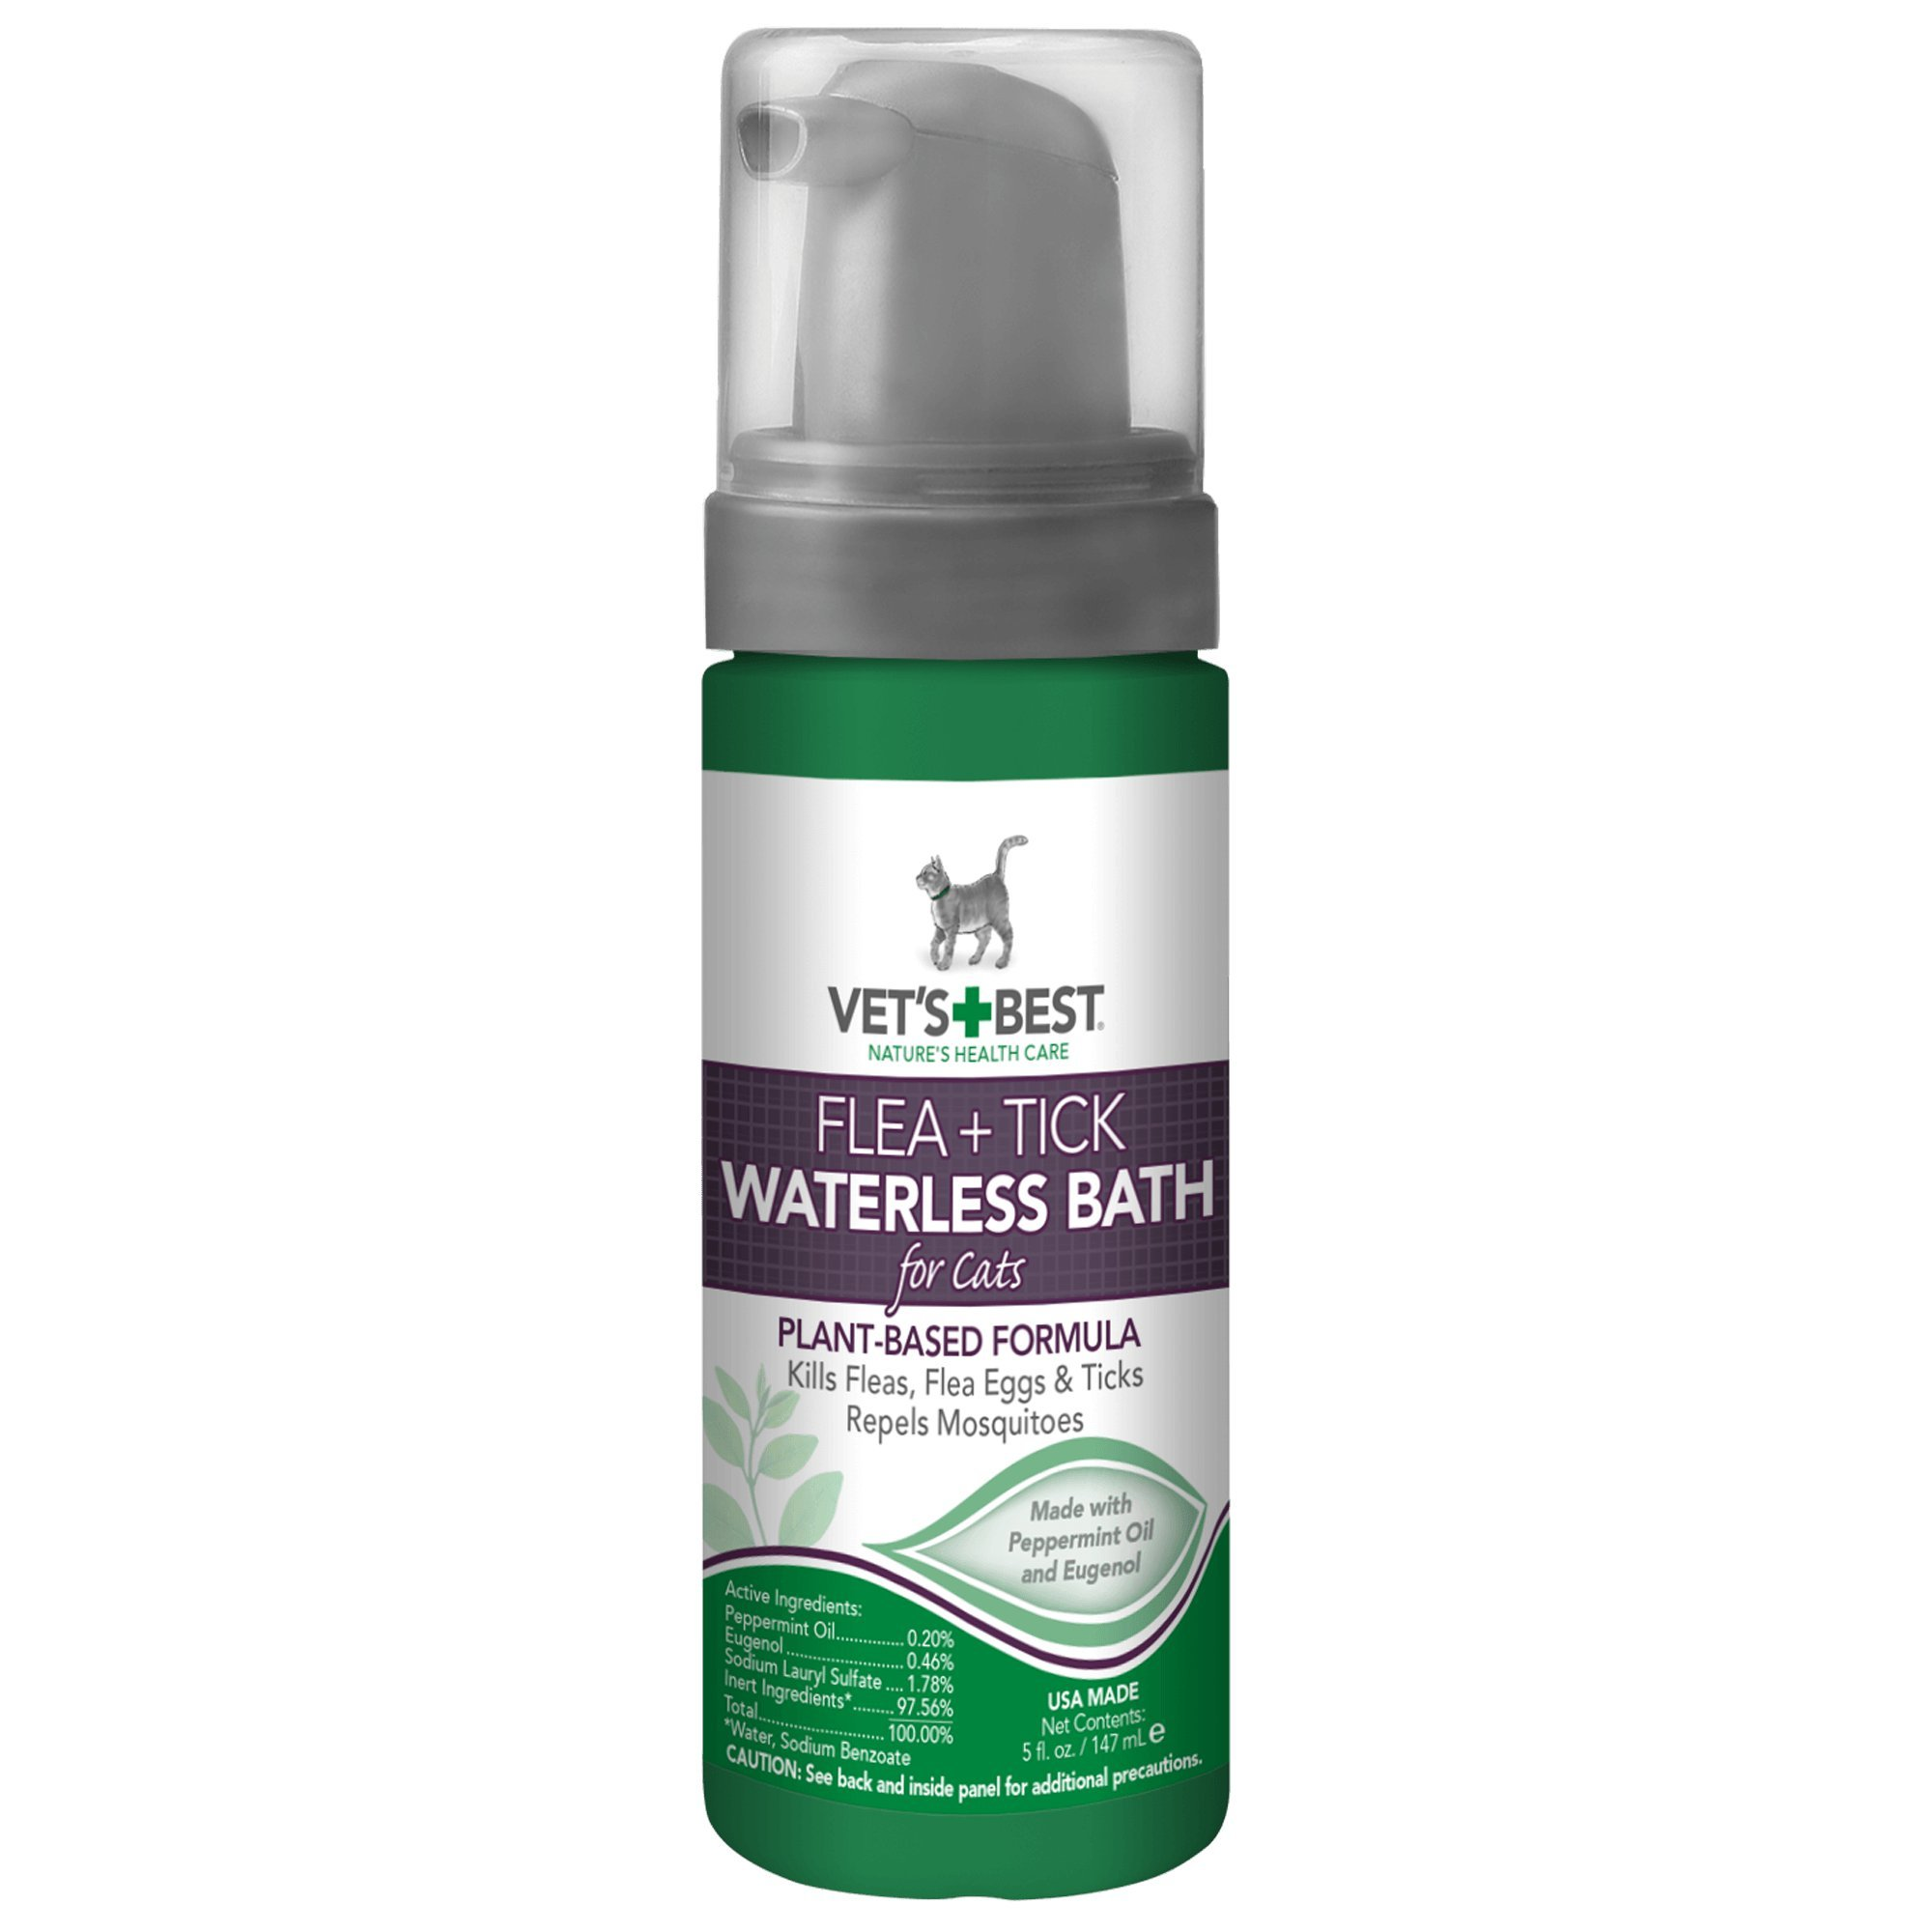 Vet's Best Flea and Tick Waterless Bath Foam Dry Shampoo for Cats, 5 oz, USA Made